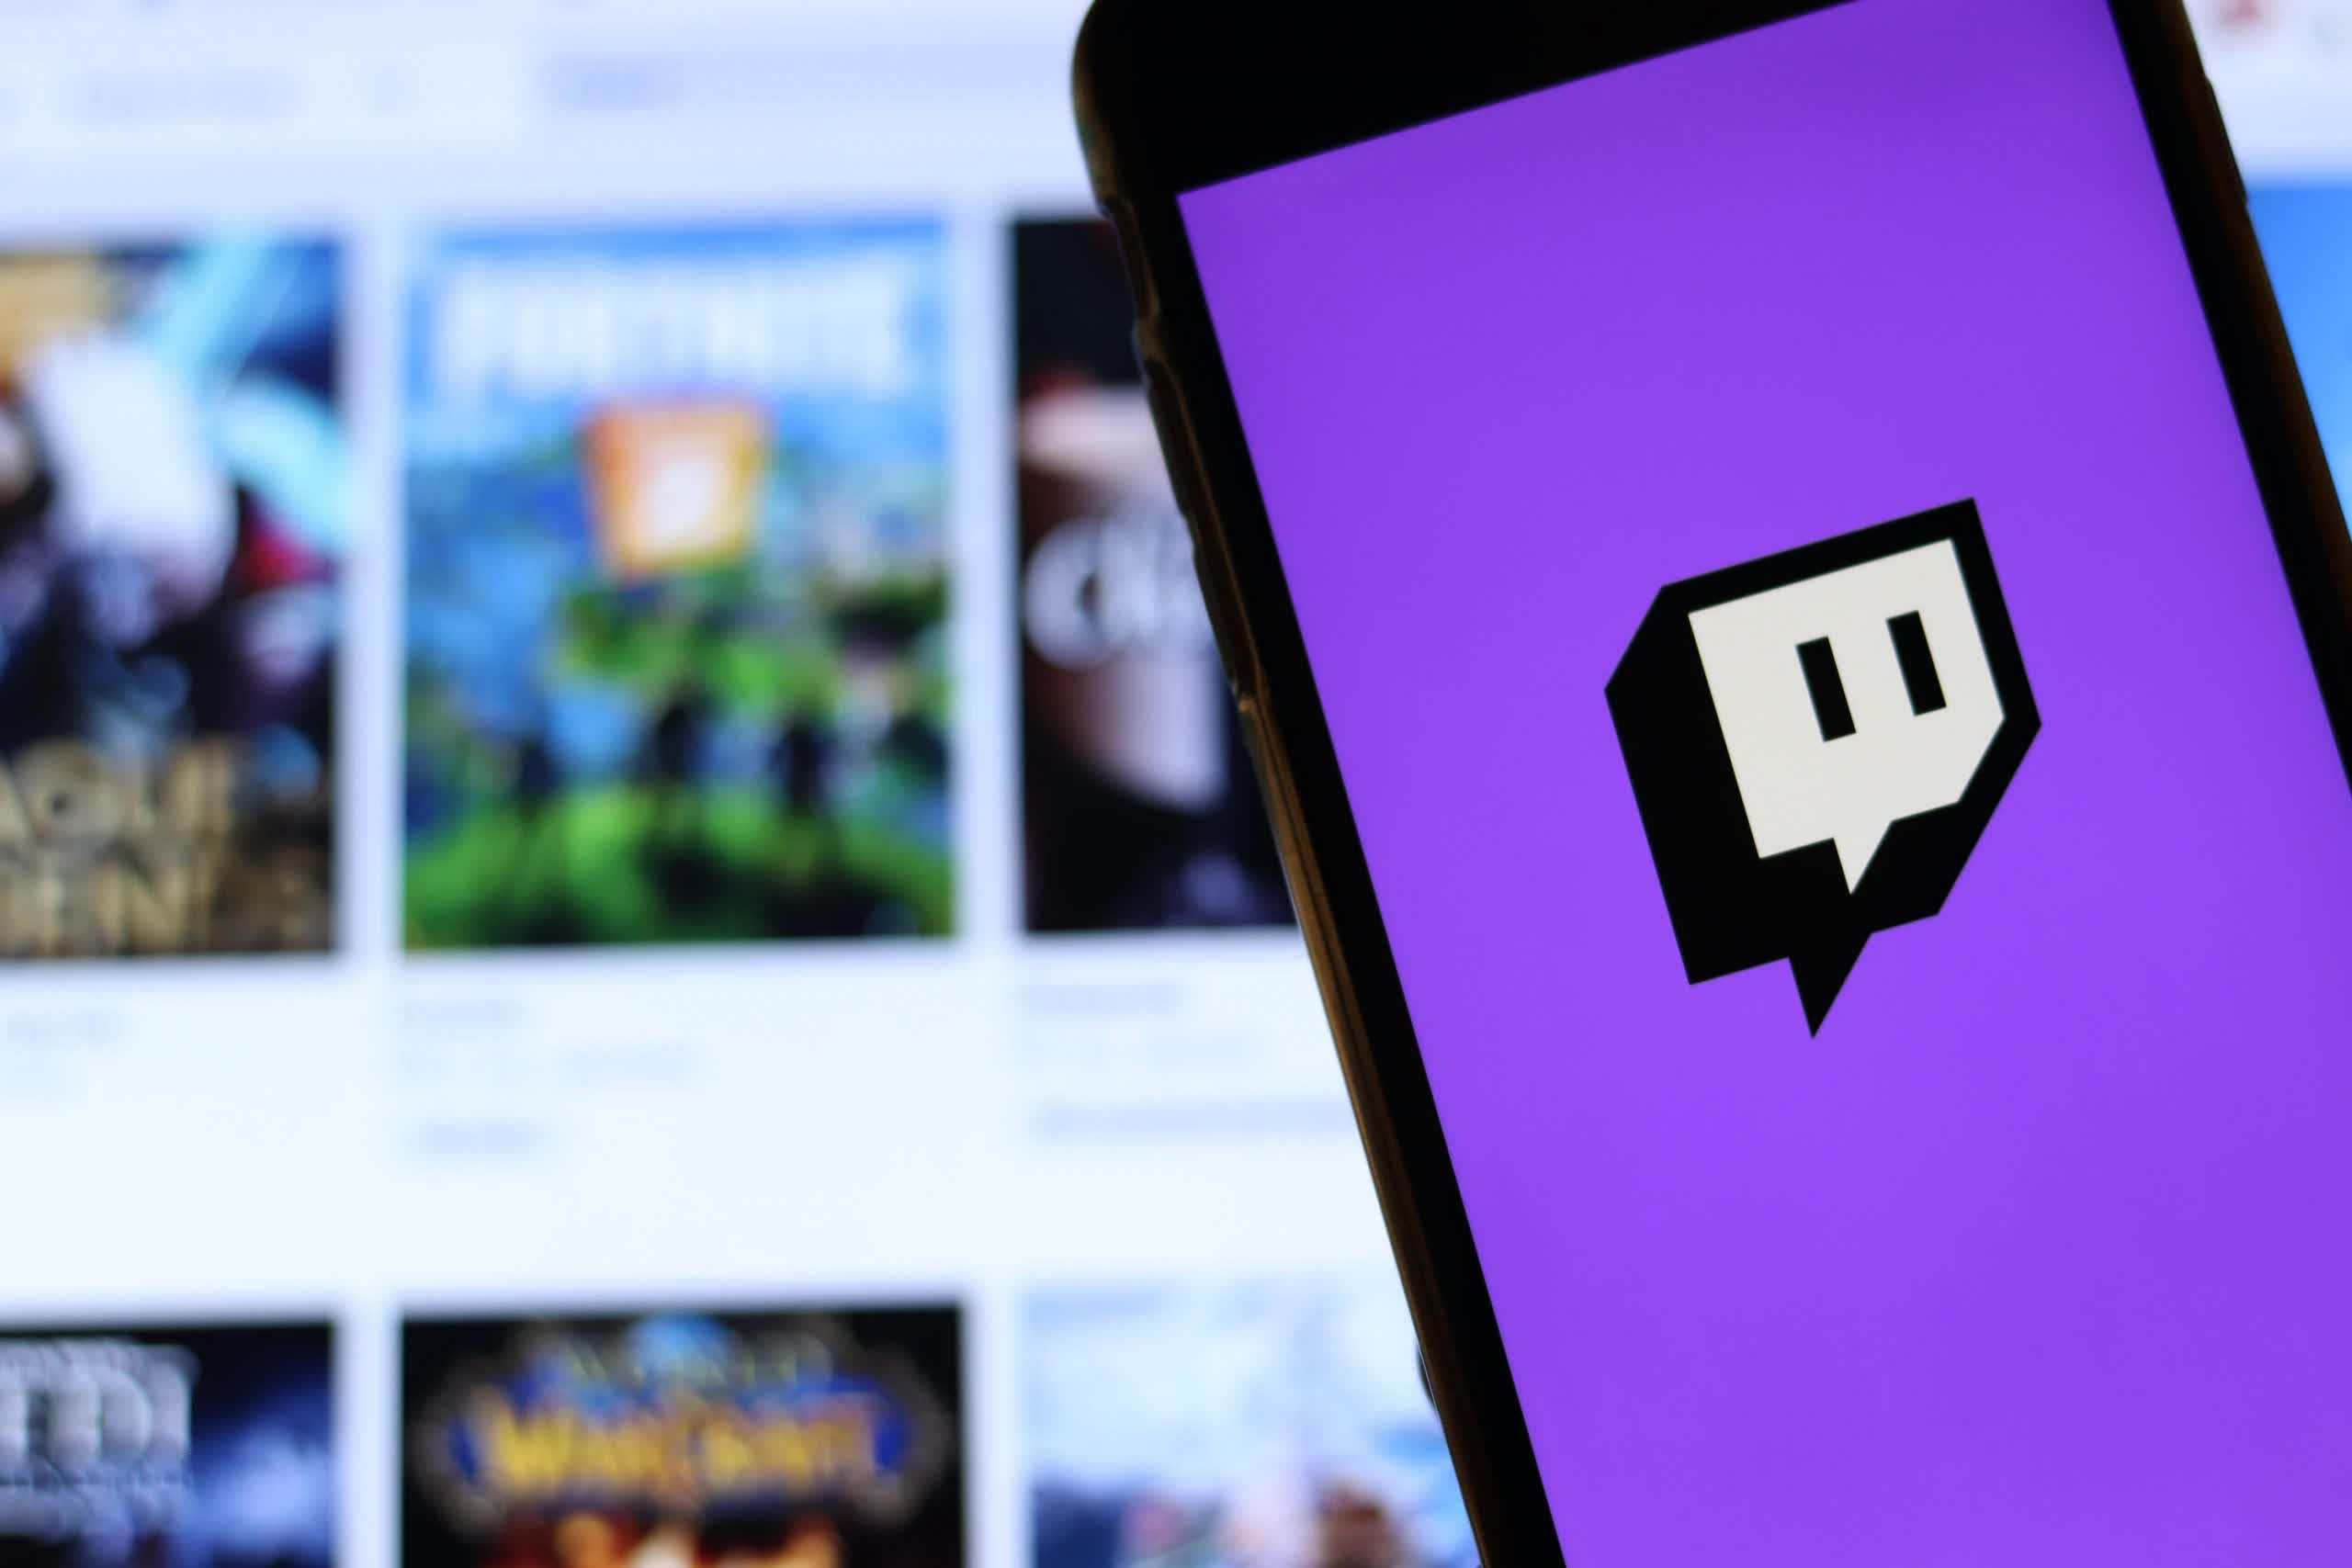 Twitch's Soundtrack app lets streamers play background music without getting a copyright strike